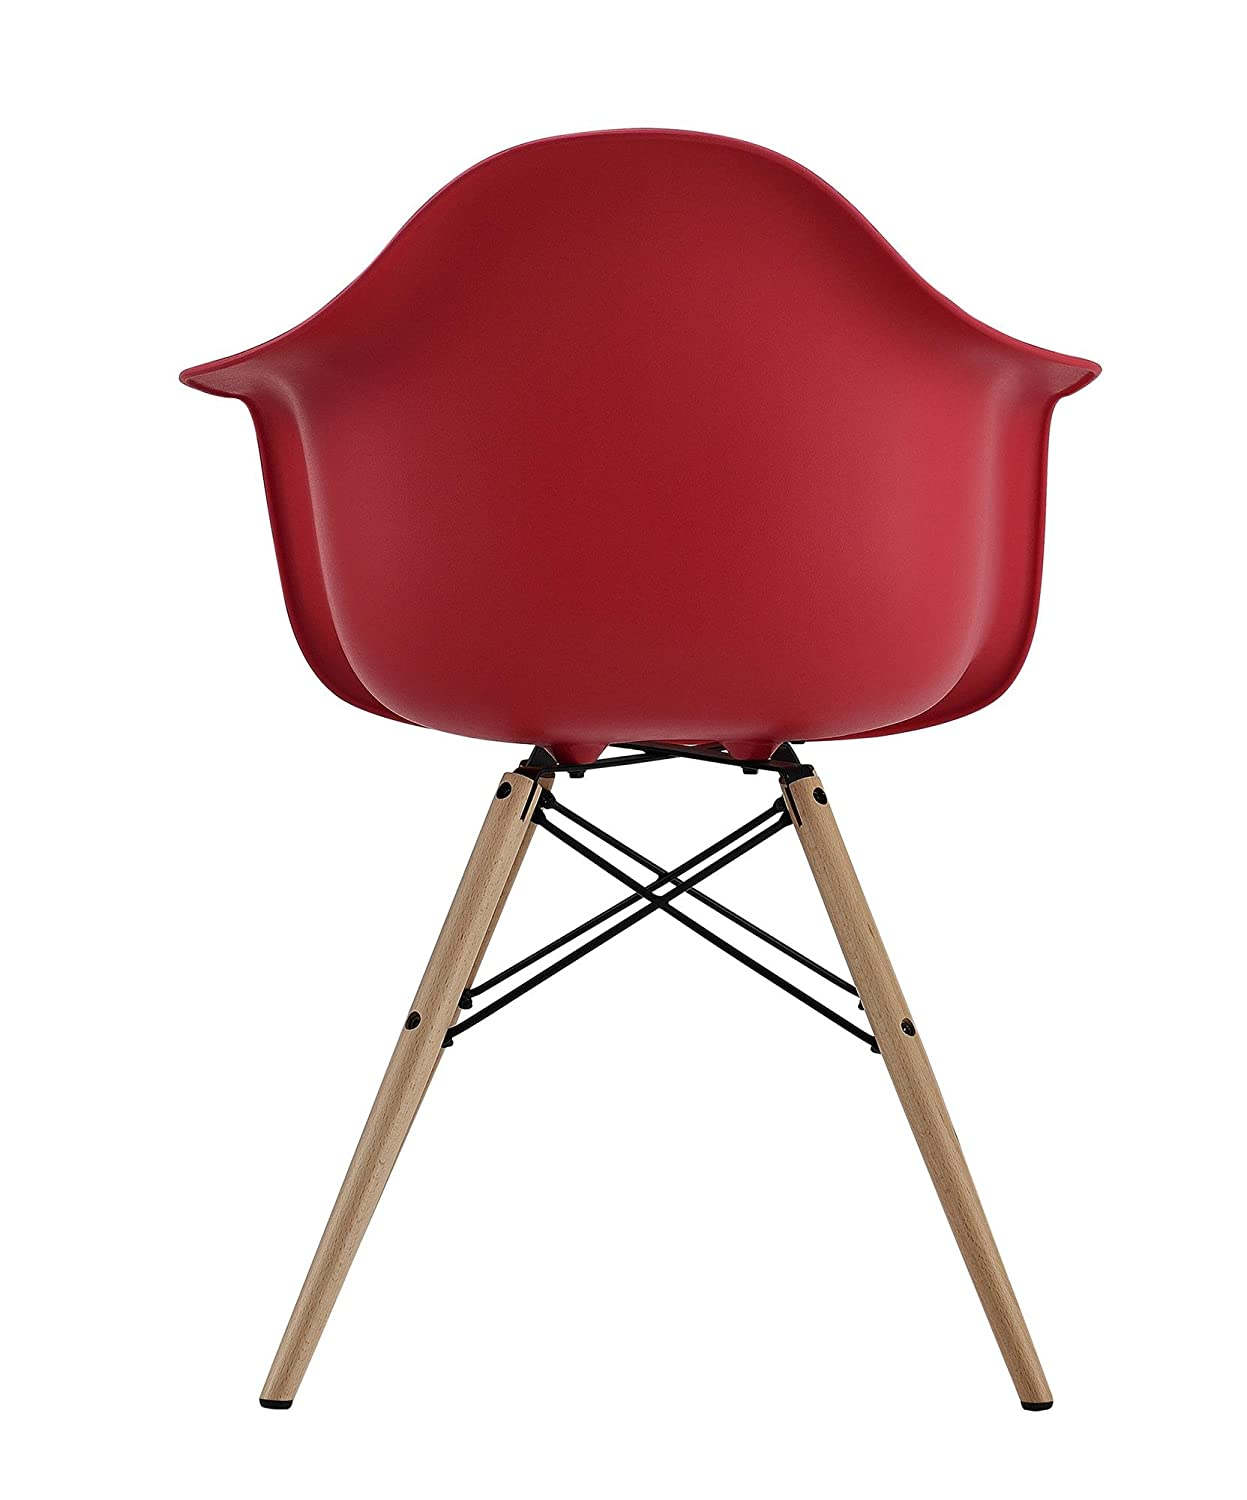 Dhp Mid Century Modern Eames Inspired Chair With Molded